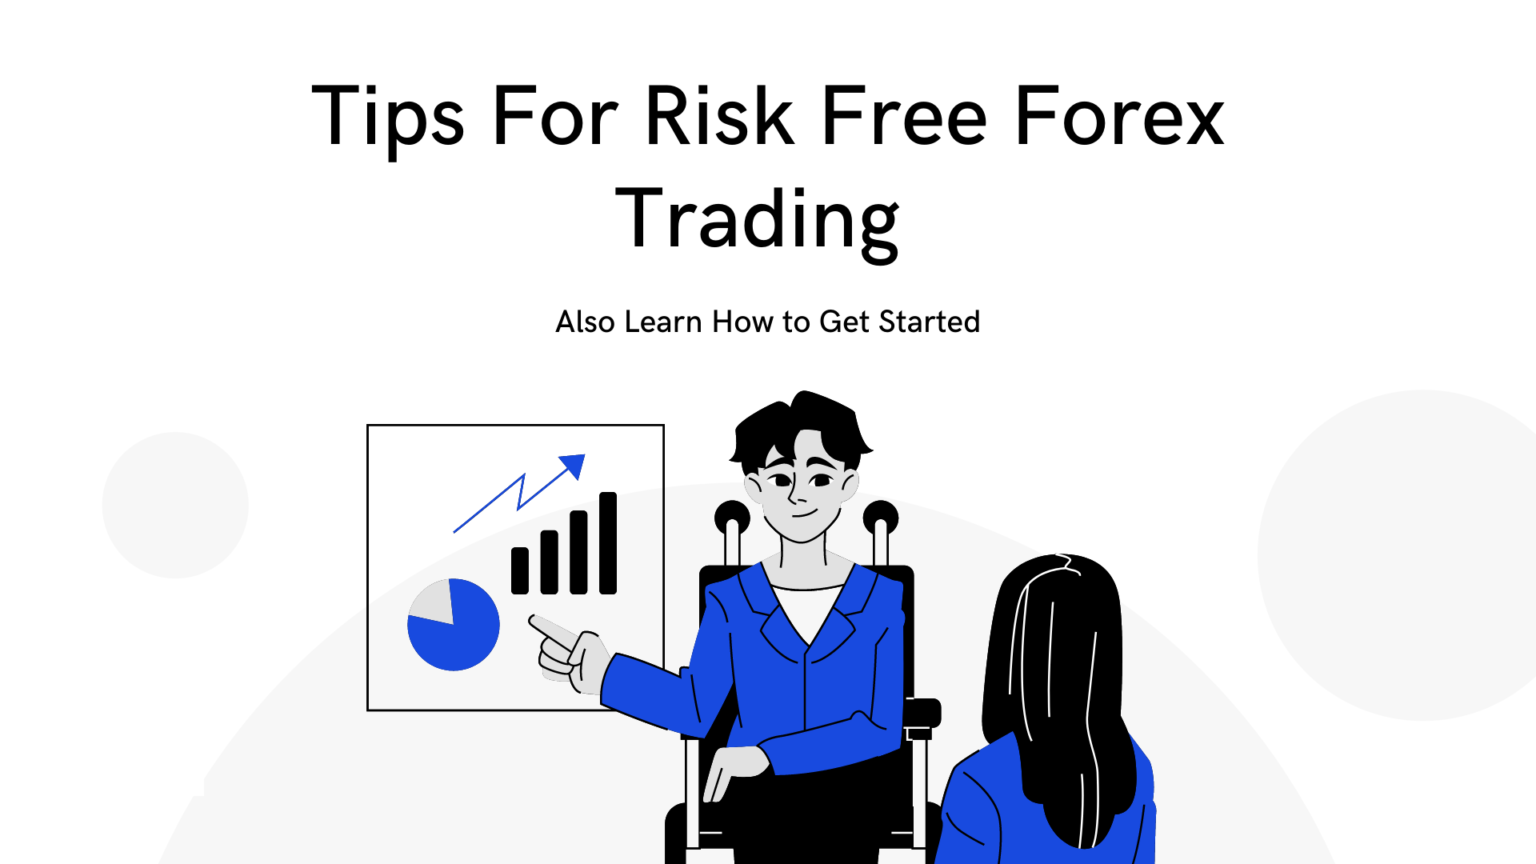 Tips For Risk Free Forex Trading